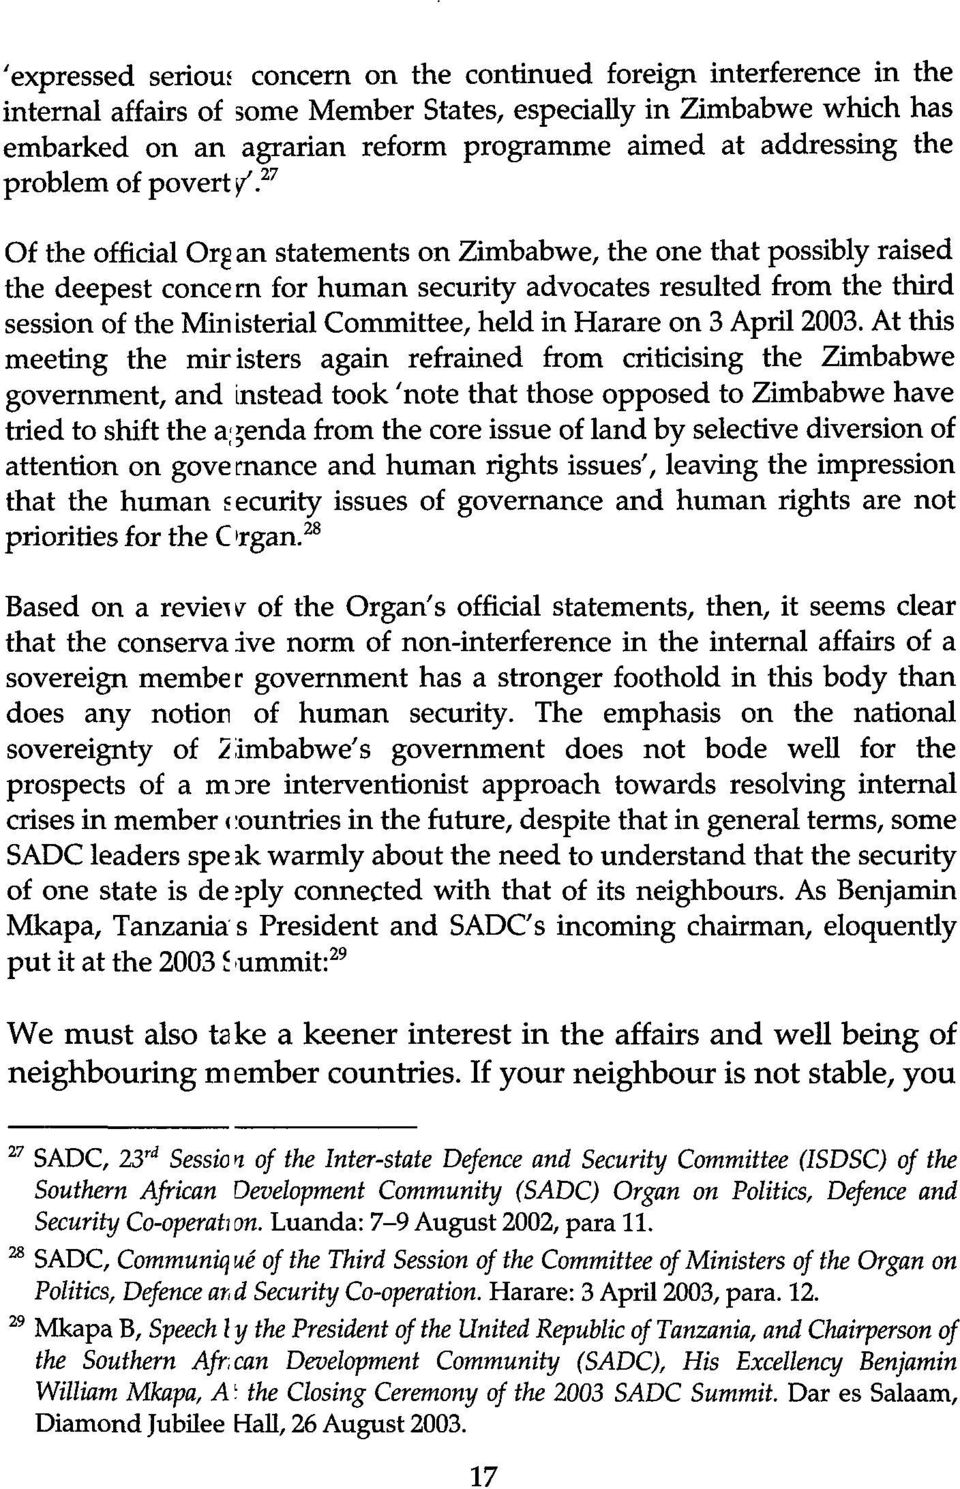 27 Of the official Organ statements on Zimbabwe, the one that possibly raised the deepest concern for human security advocates resulted from the third session of the Ministerial Committee, held in